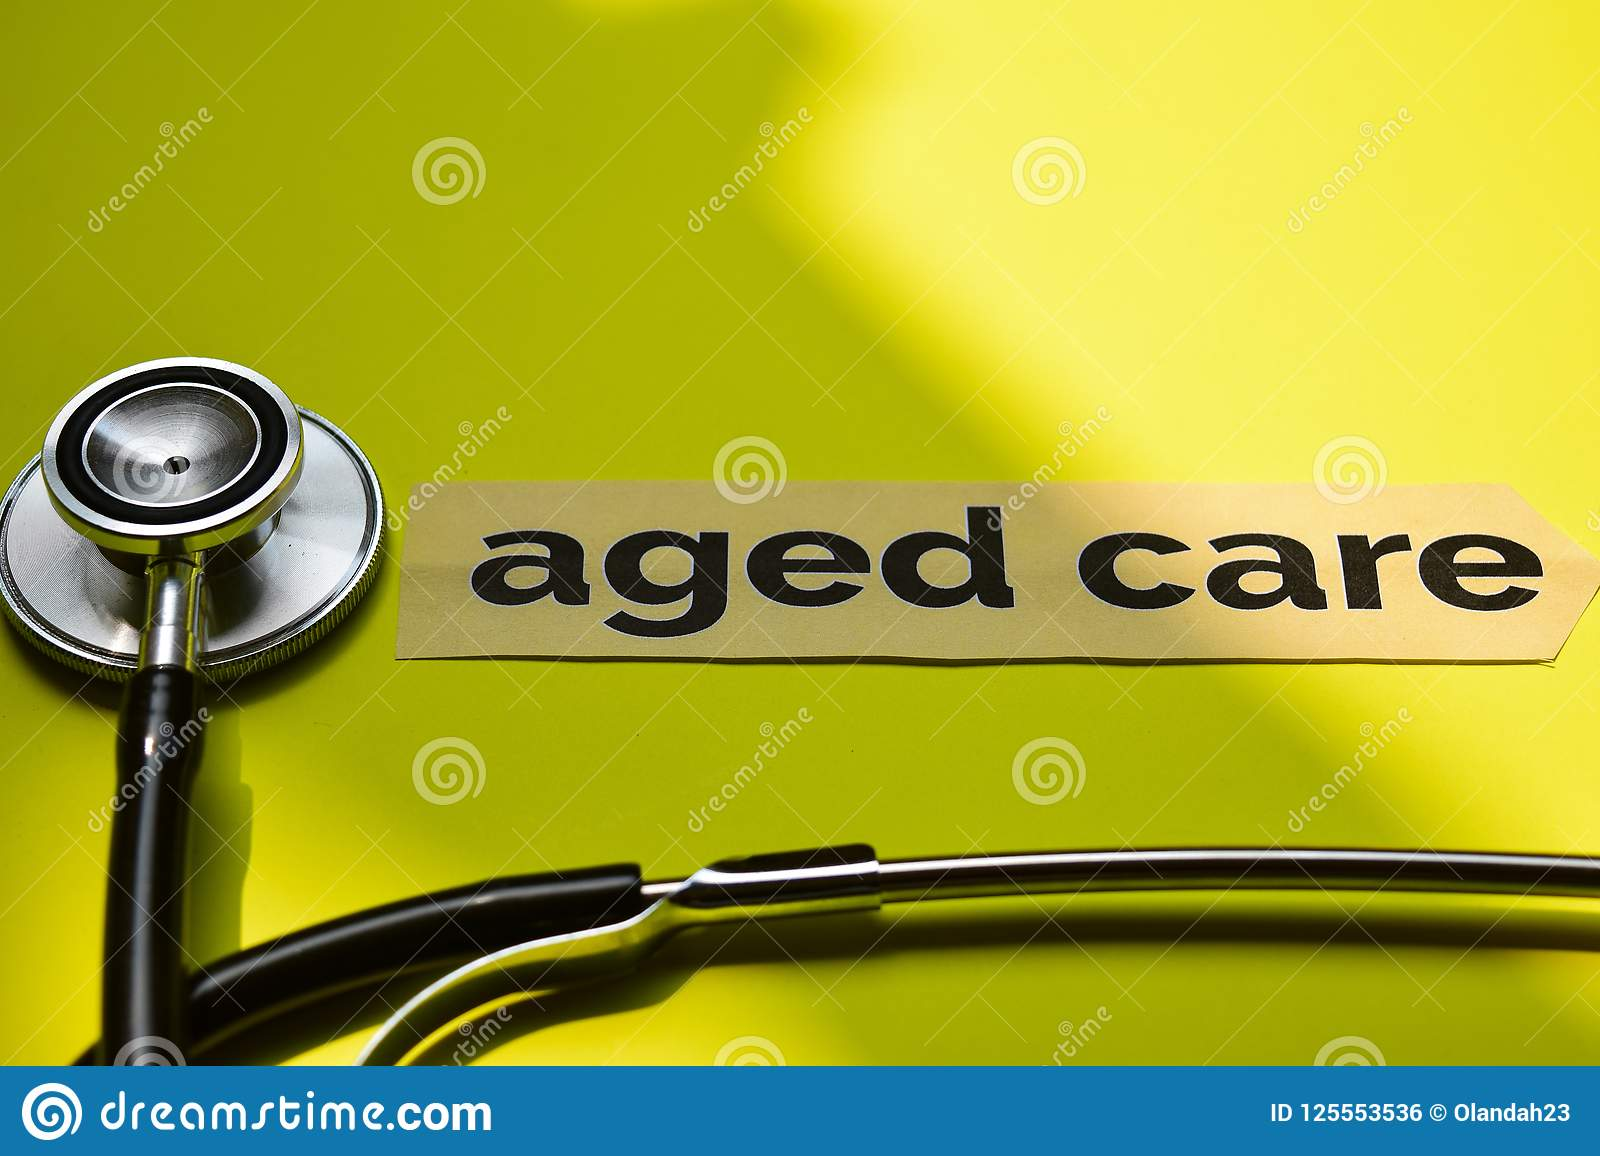 Closeup aged care with stethoscope concept inspiration on yellow background